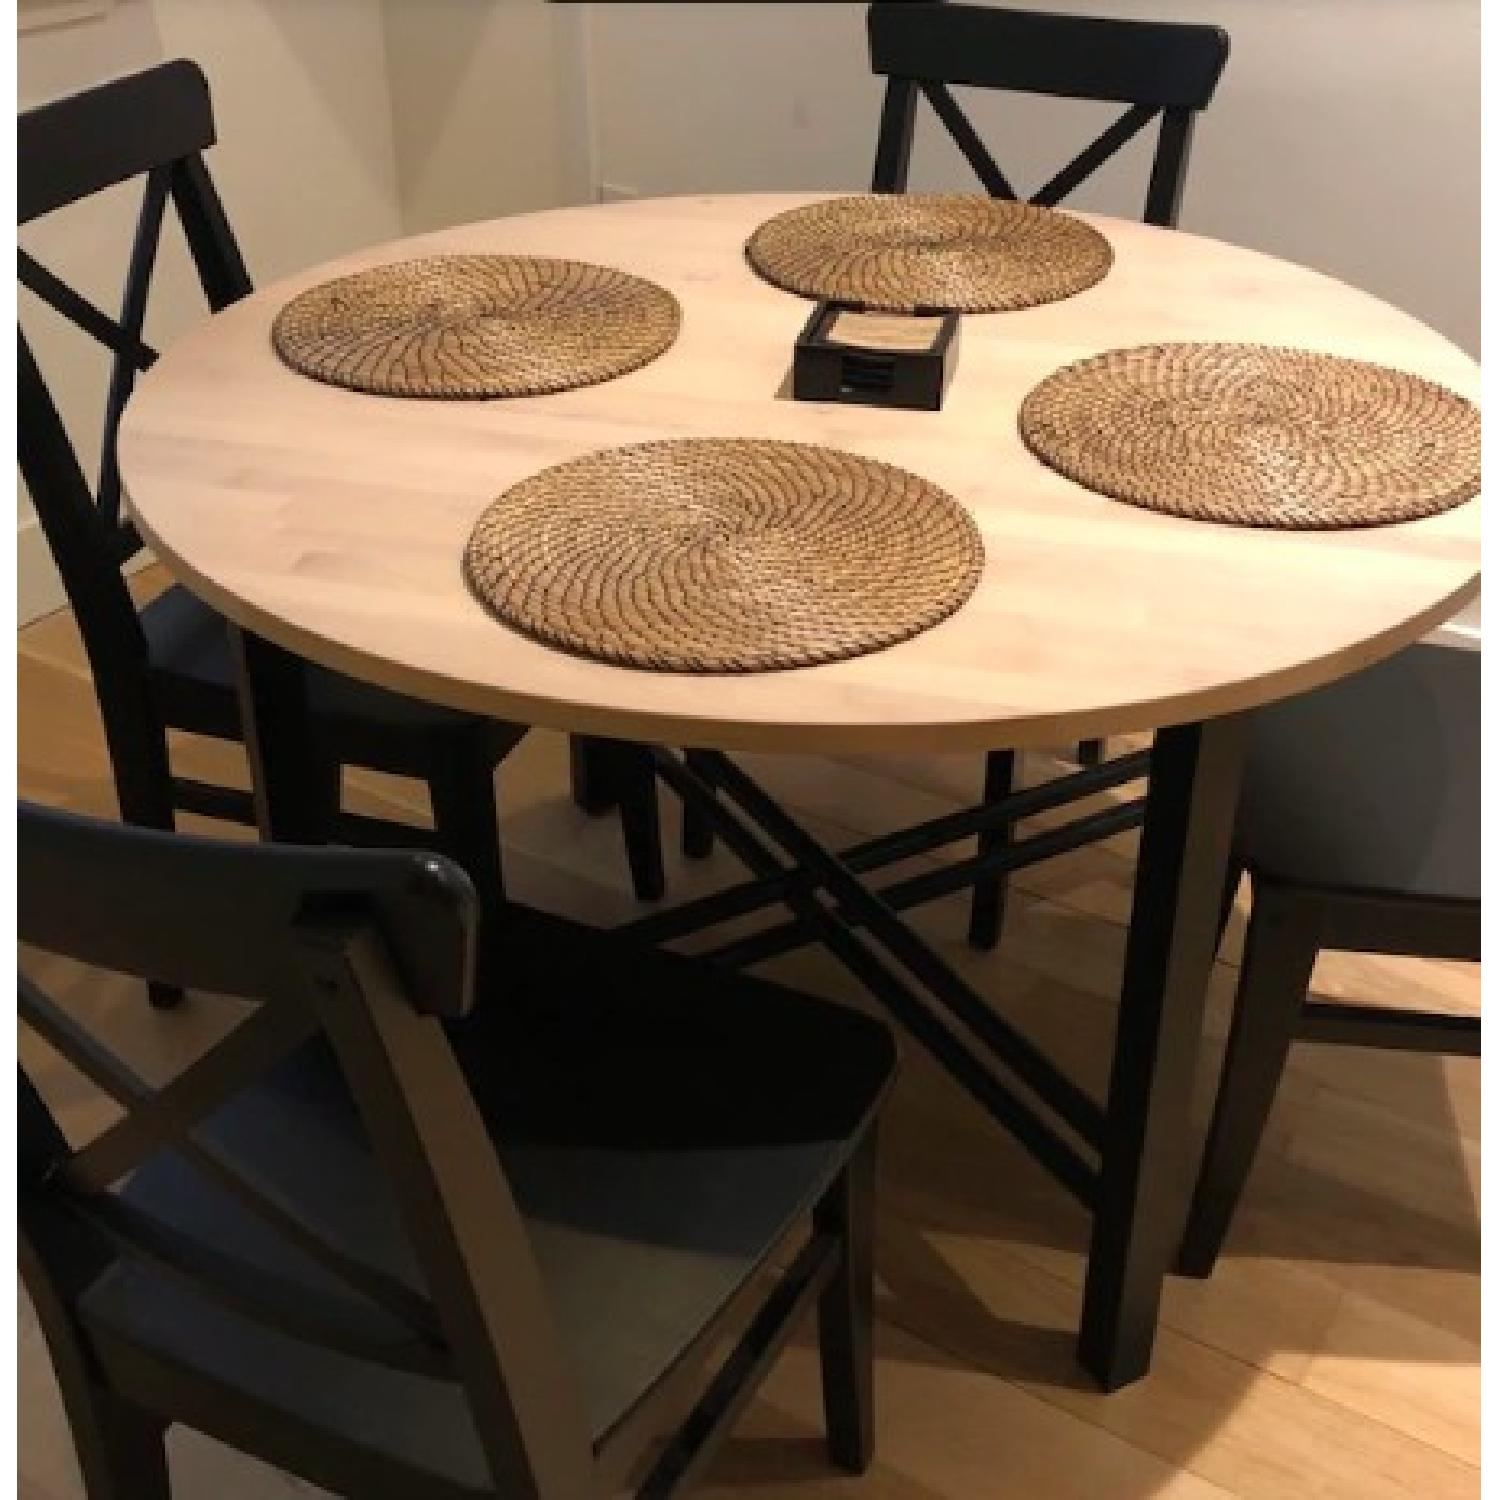 Ikea Dining Table w/ 4 Chairs-1